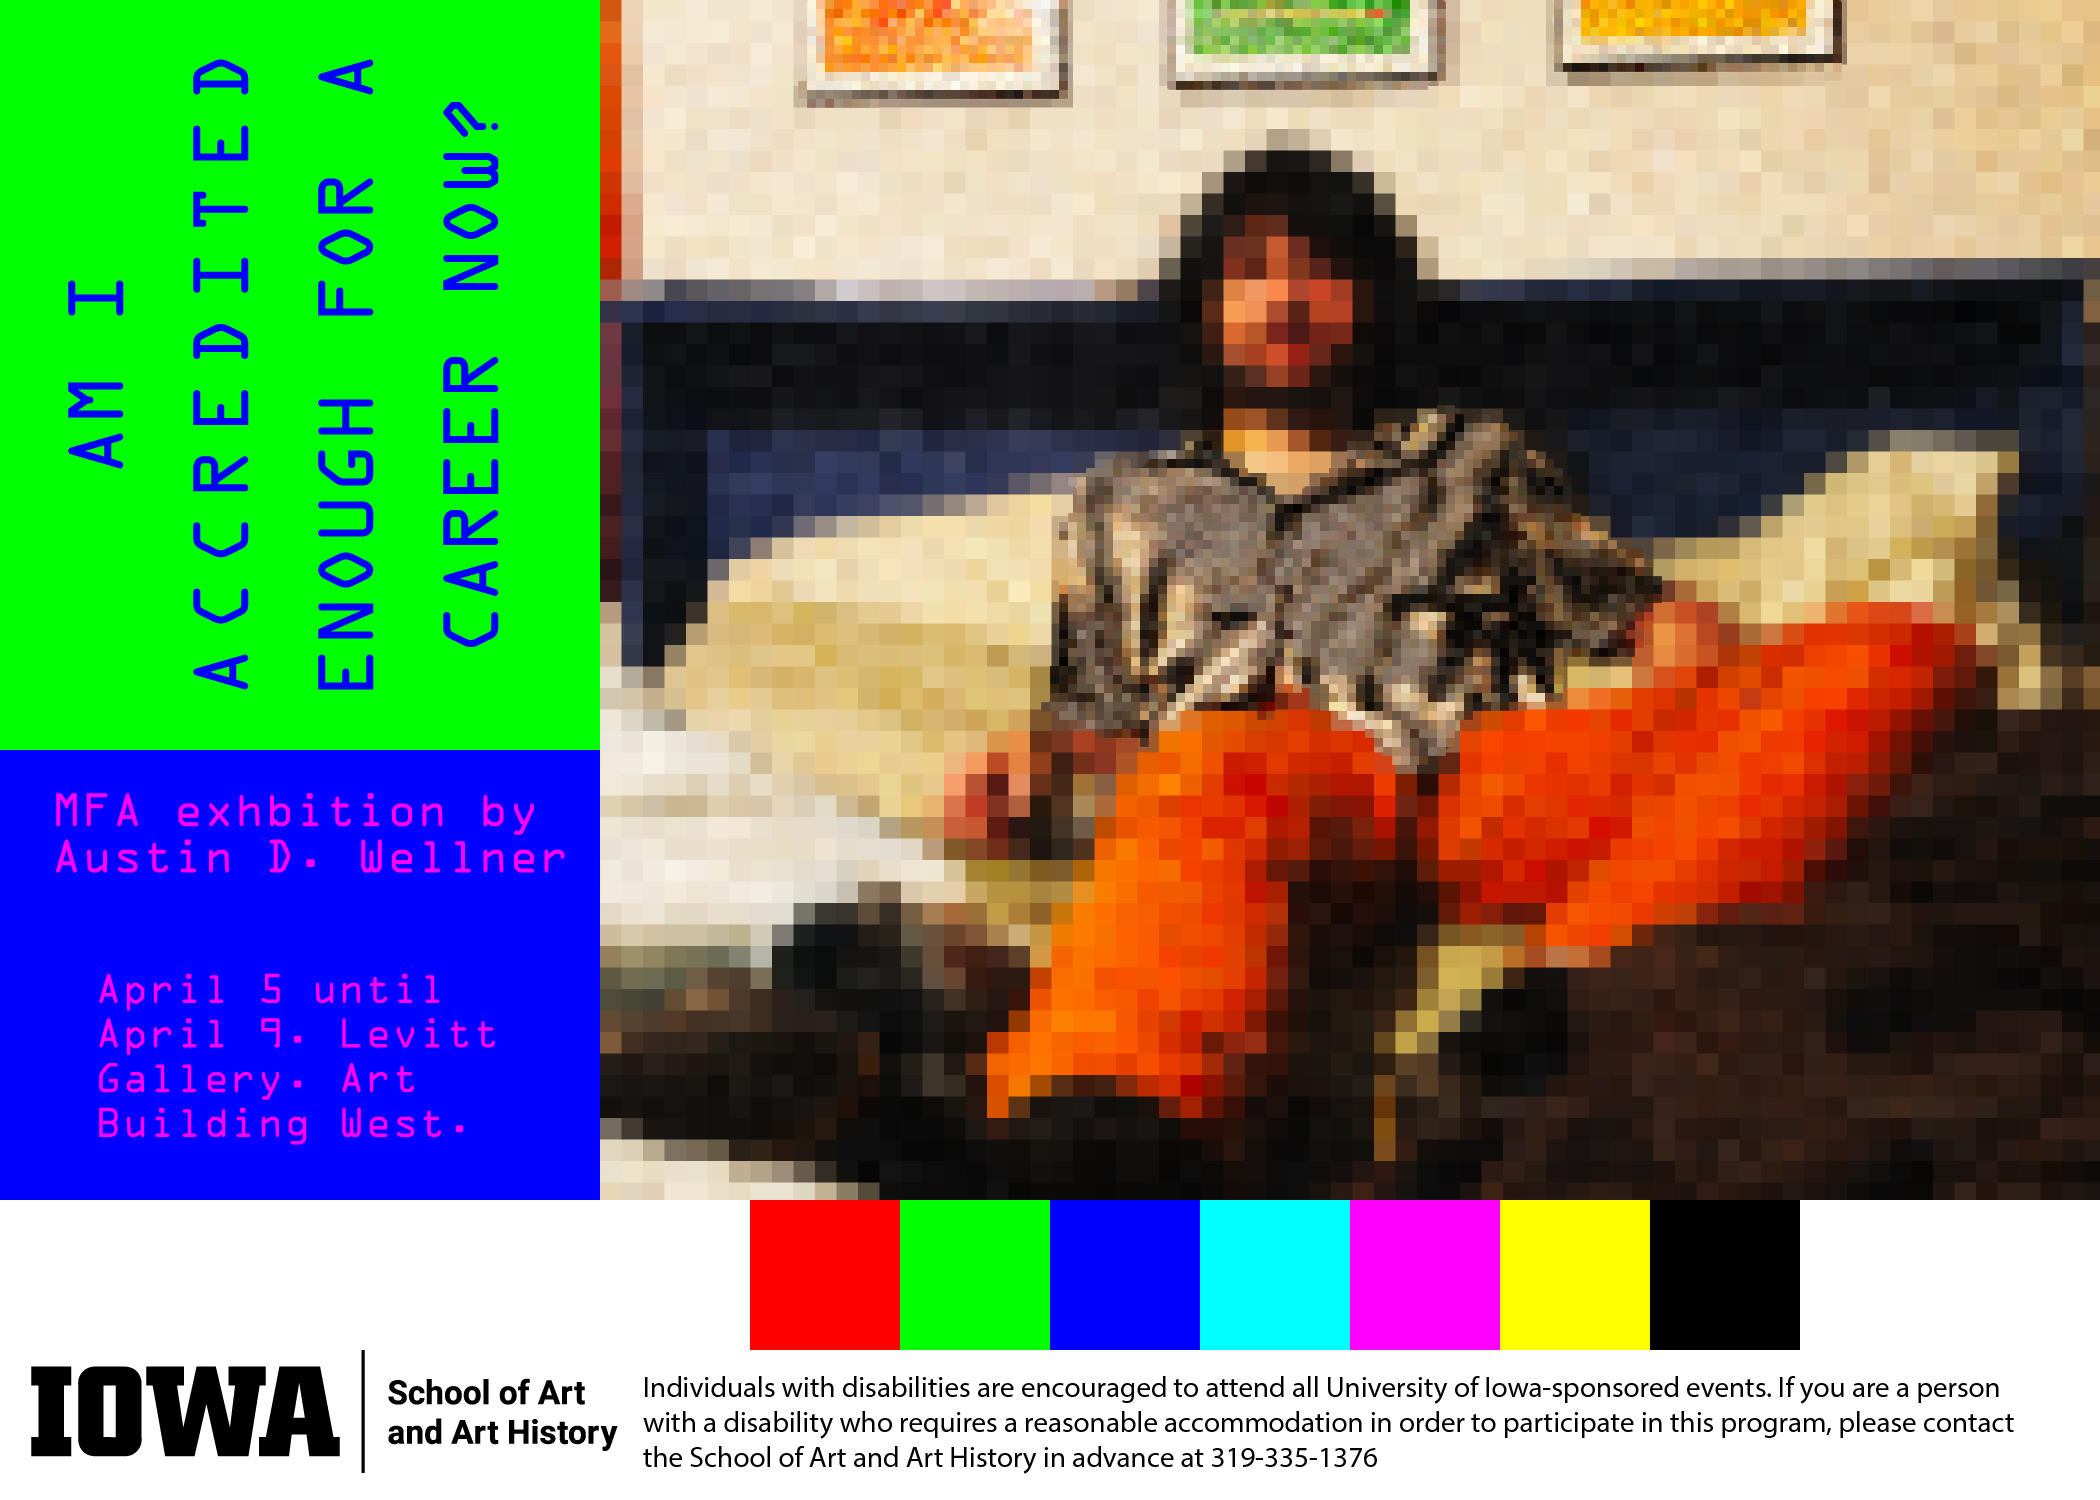 blocks of color - red green blue turquoise pink yellow black along bottom, pixelated person on bed with pictures on wall